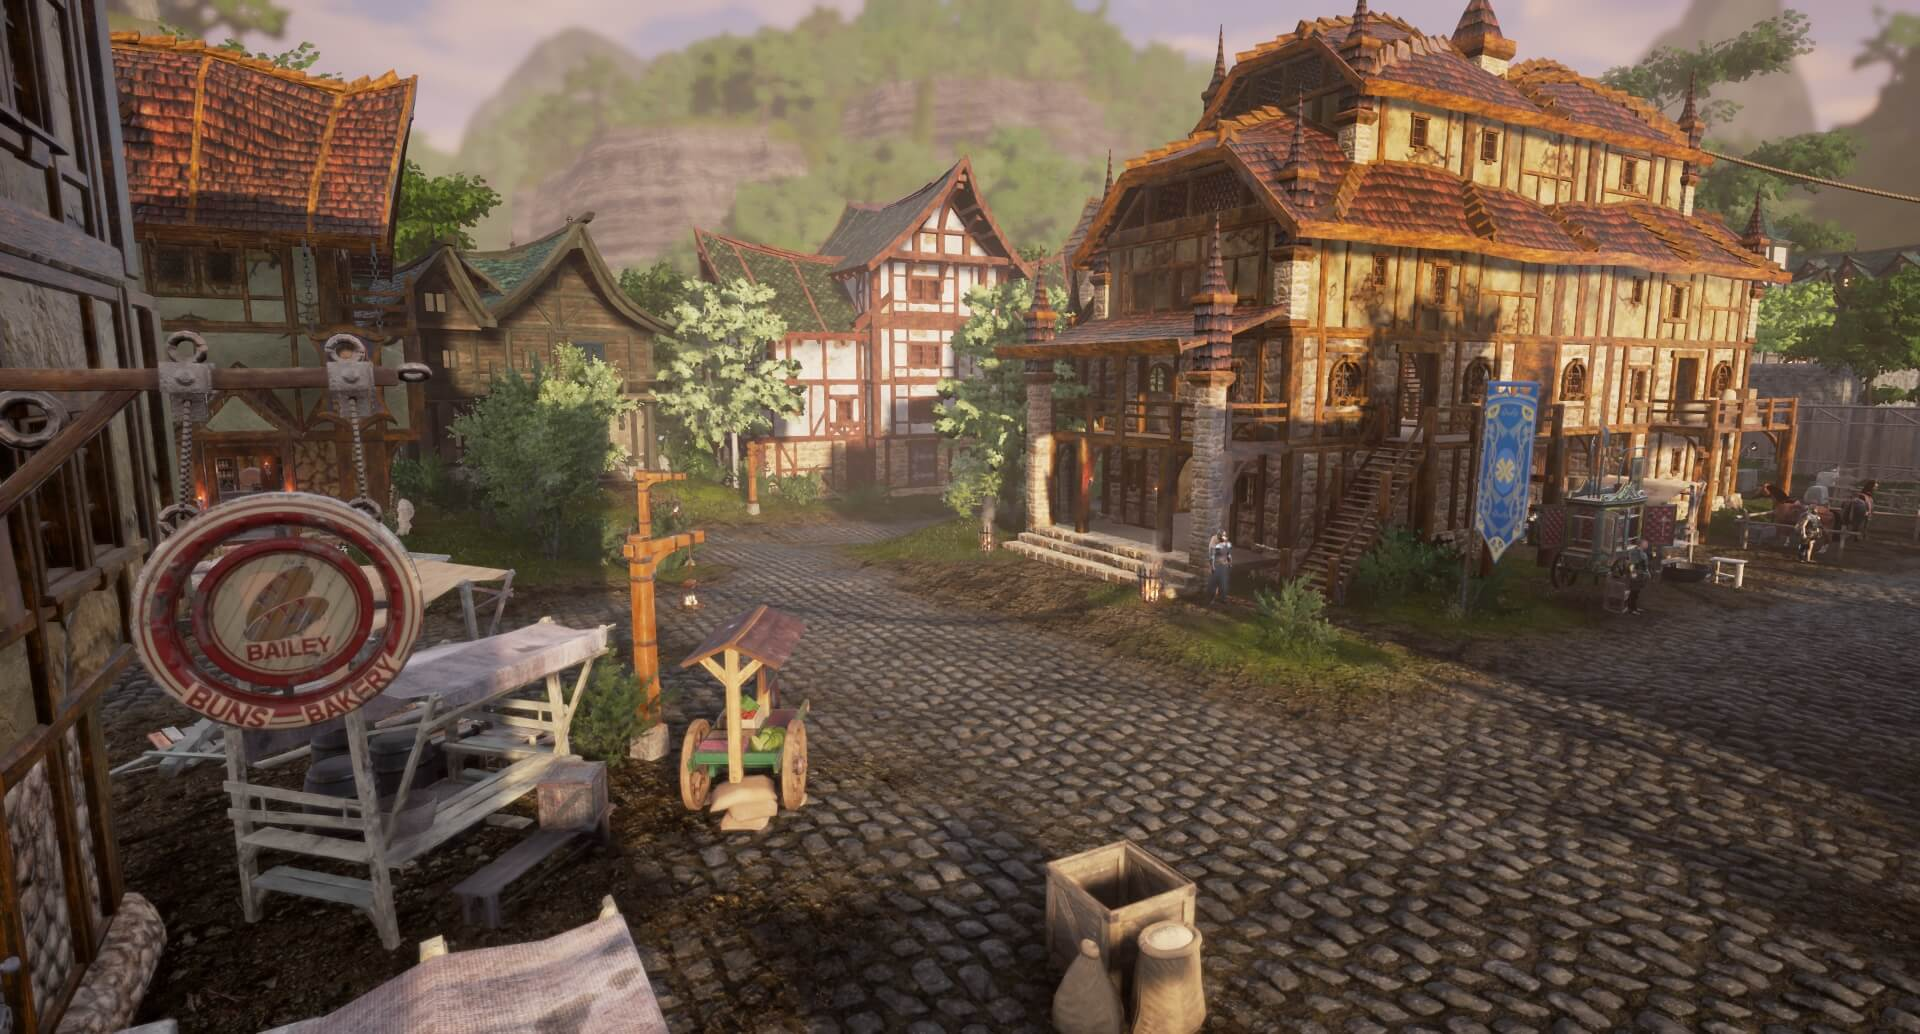 Theo dõi trailer mới của game MMO Ashes of Creation